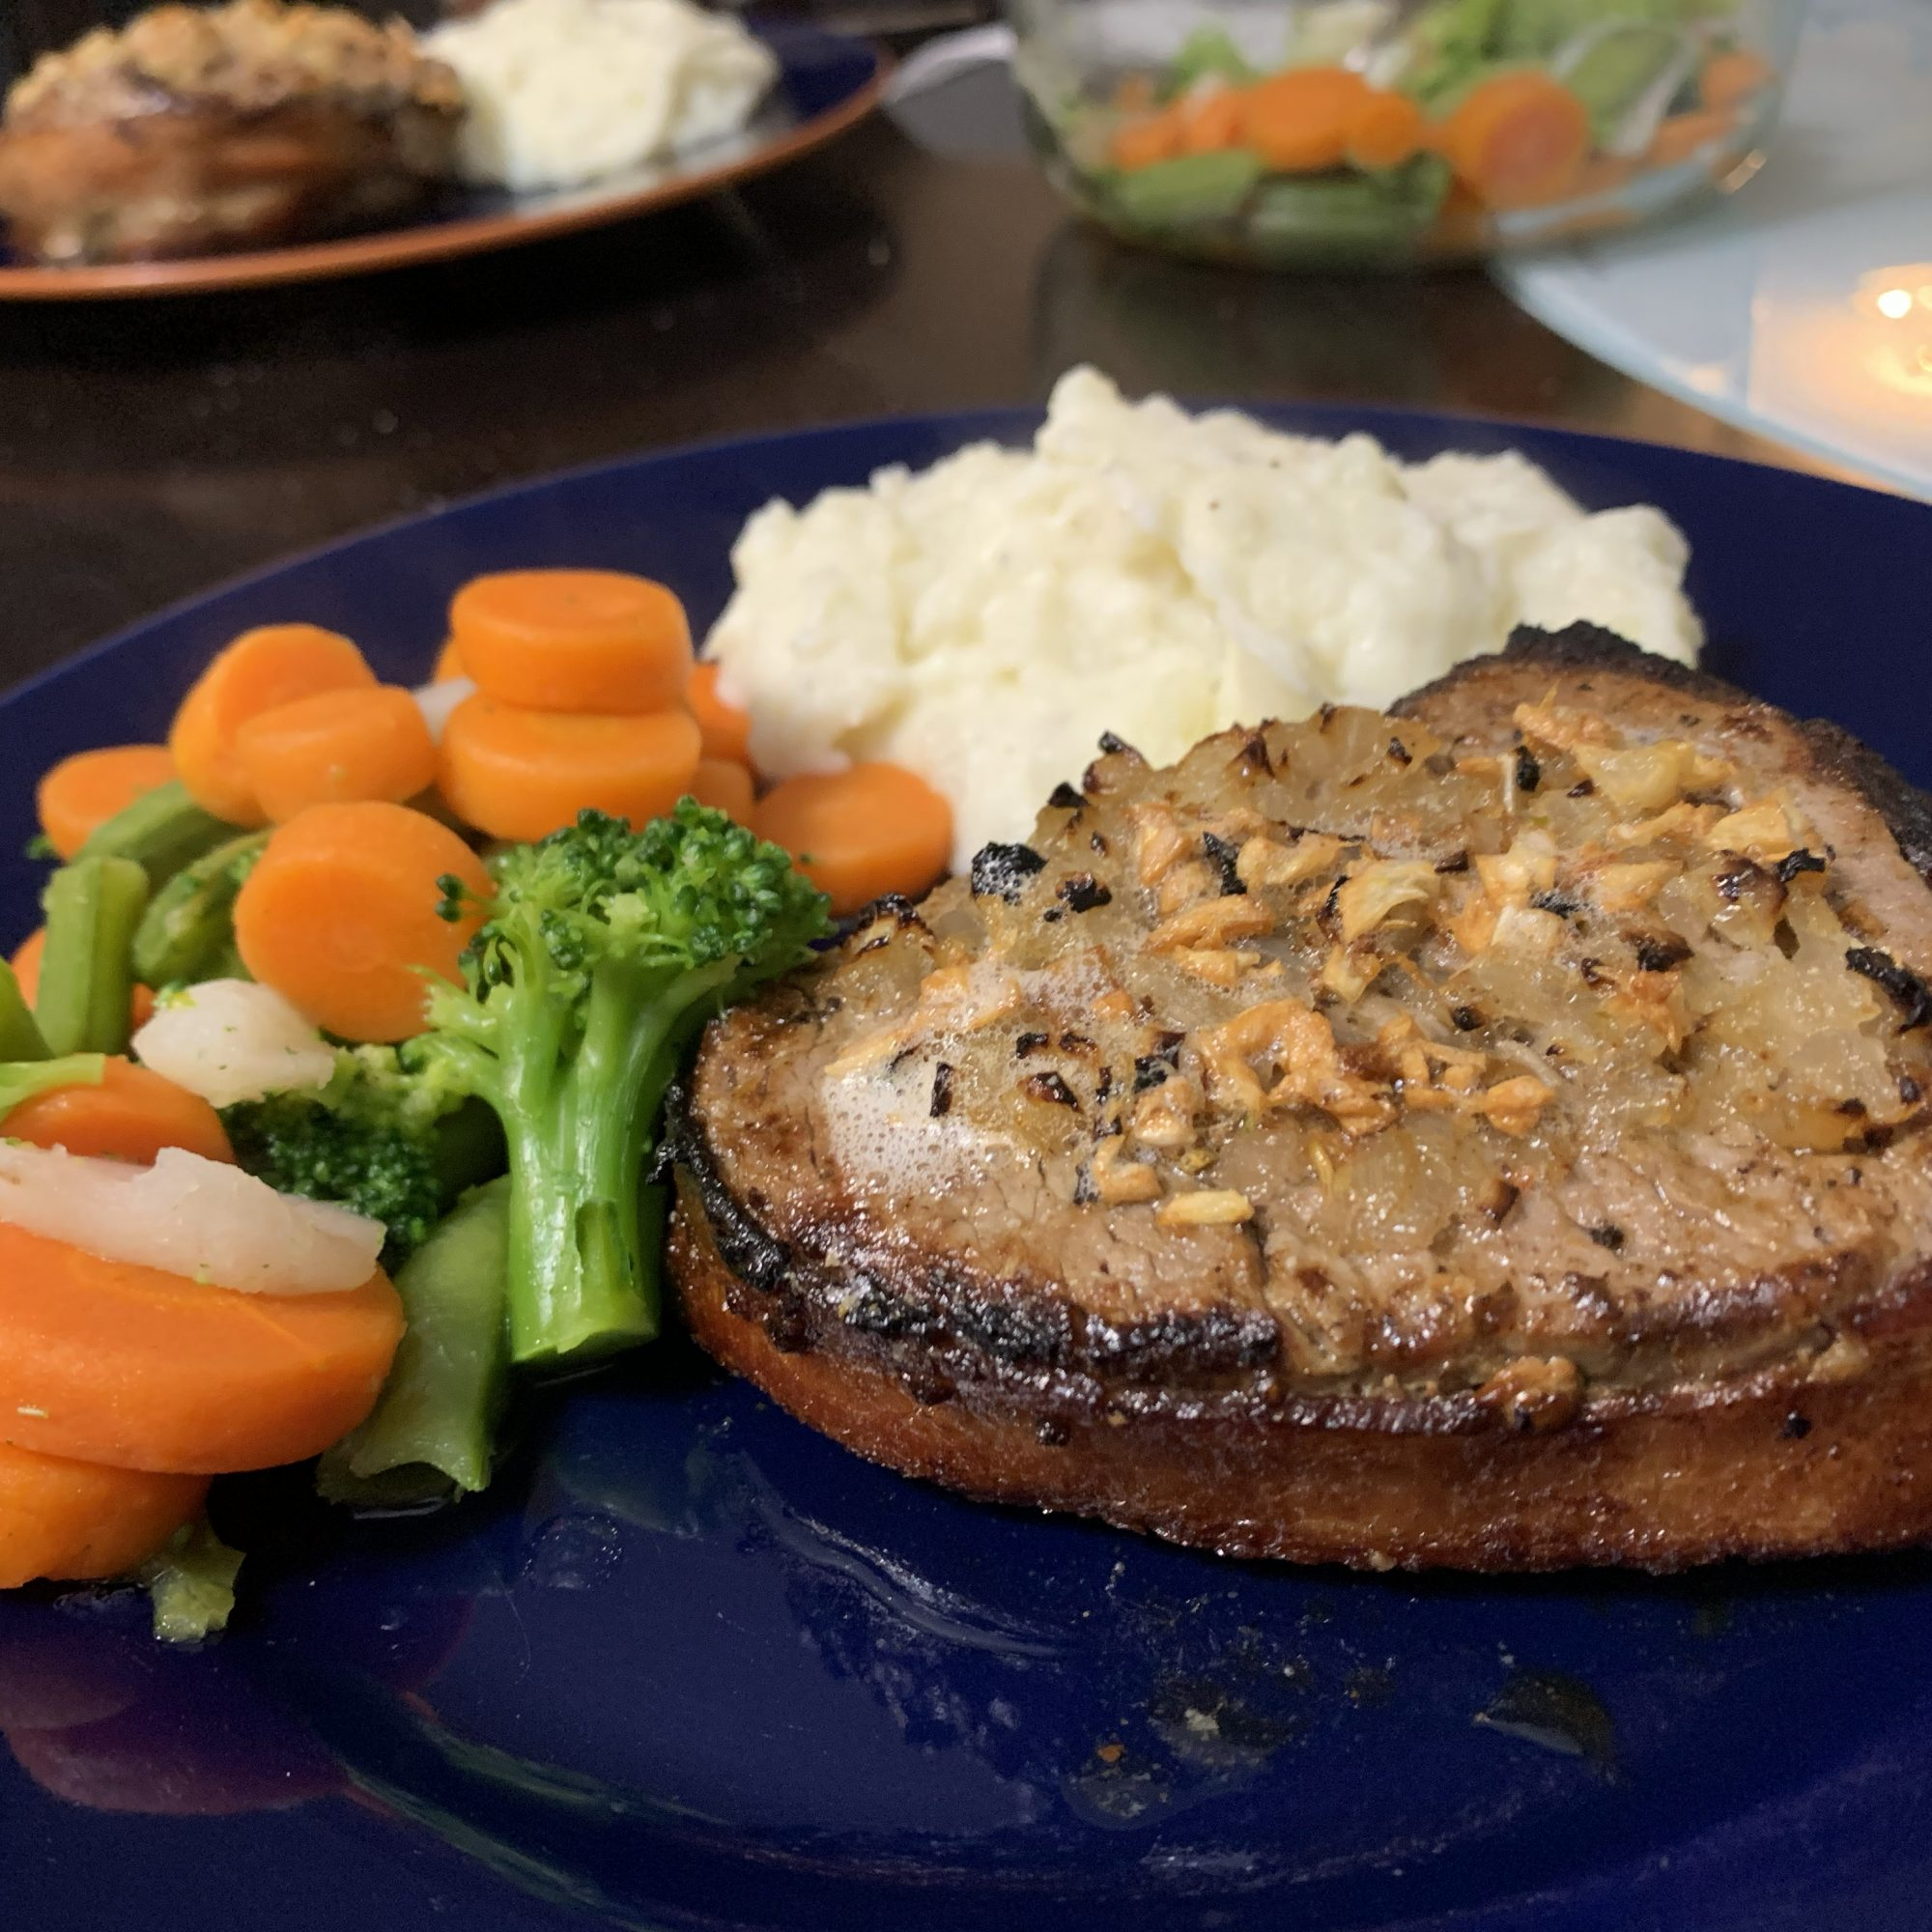 bacon wrapped filet served with mashed potatoes and veggies